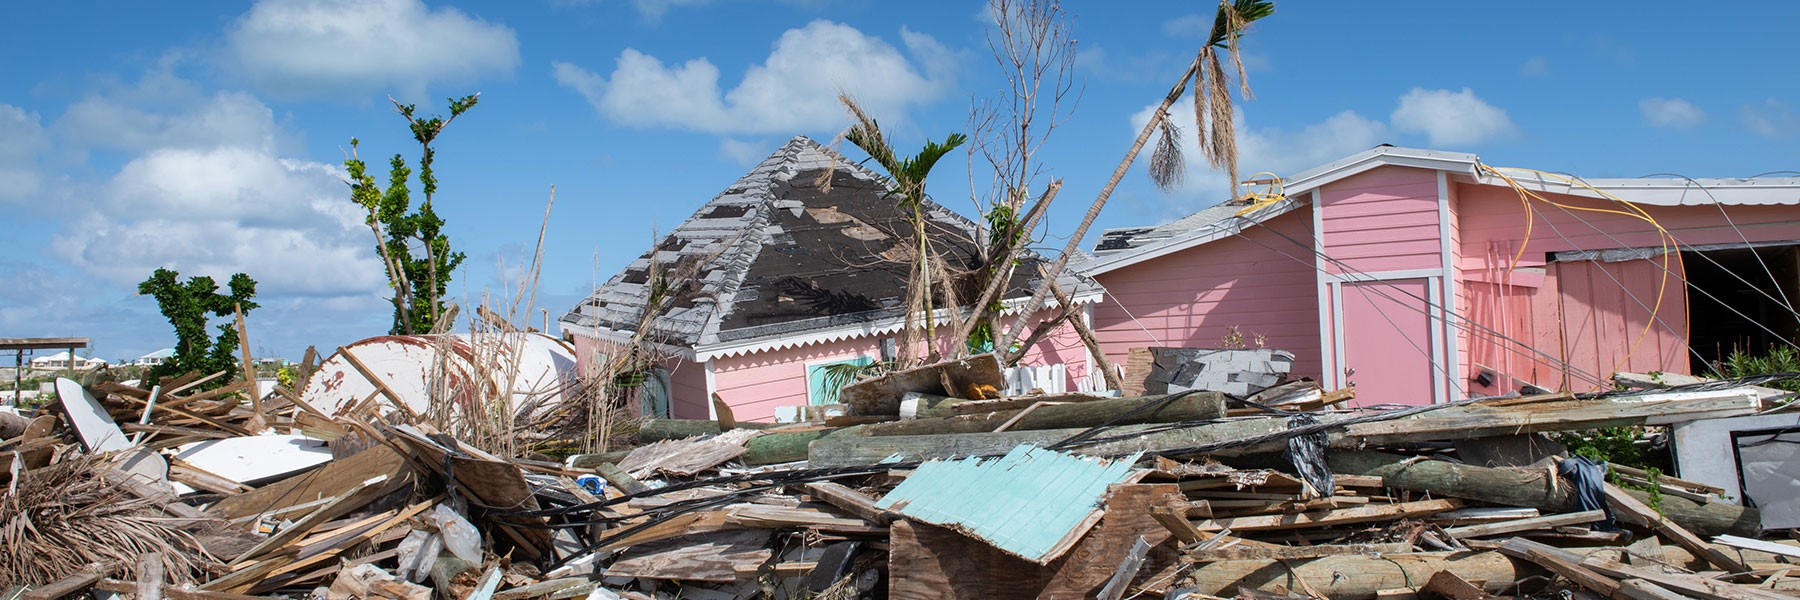 In The Bahamas a pink house and a pile of construction rubble stands in ruin after being hit by hurricane Dorian.